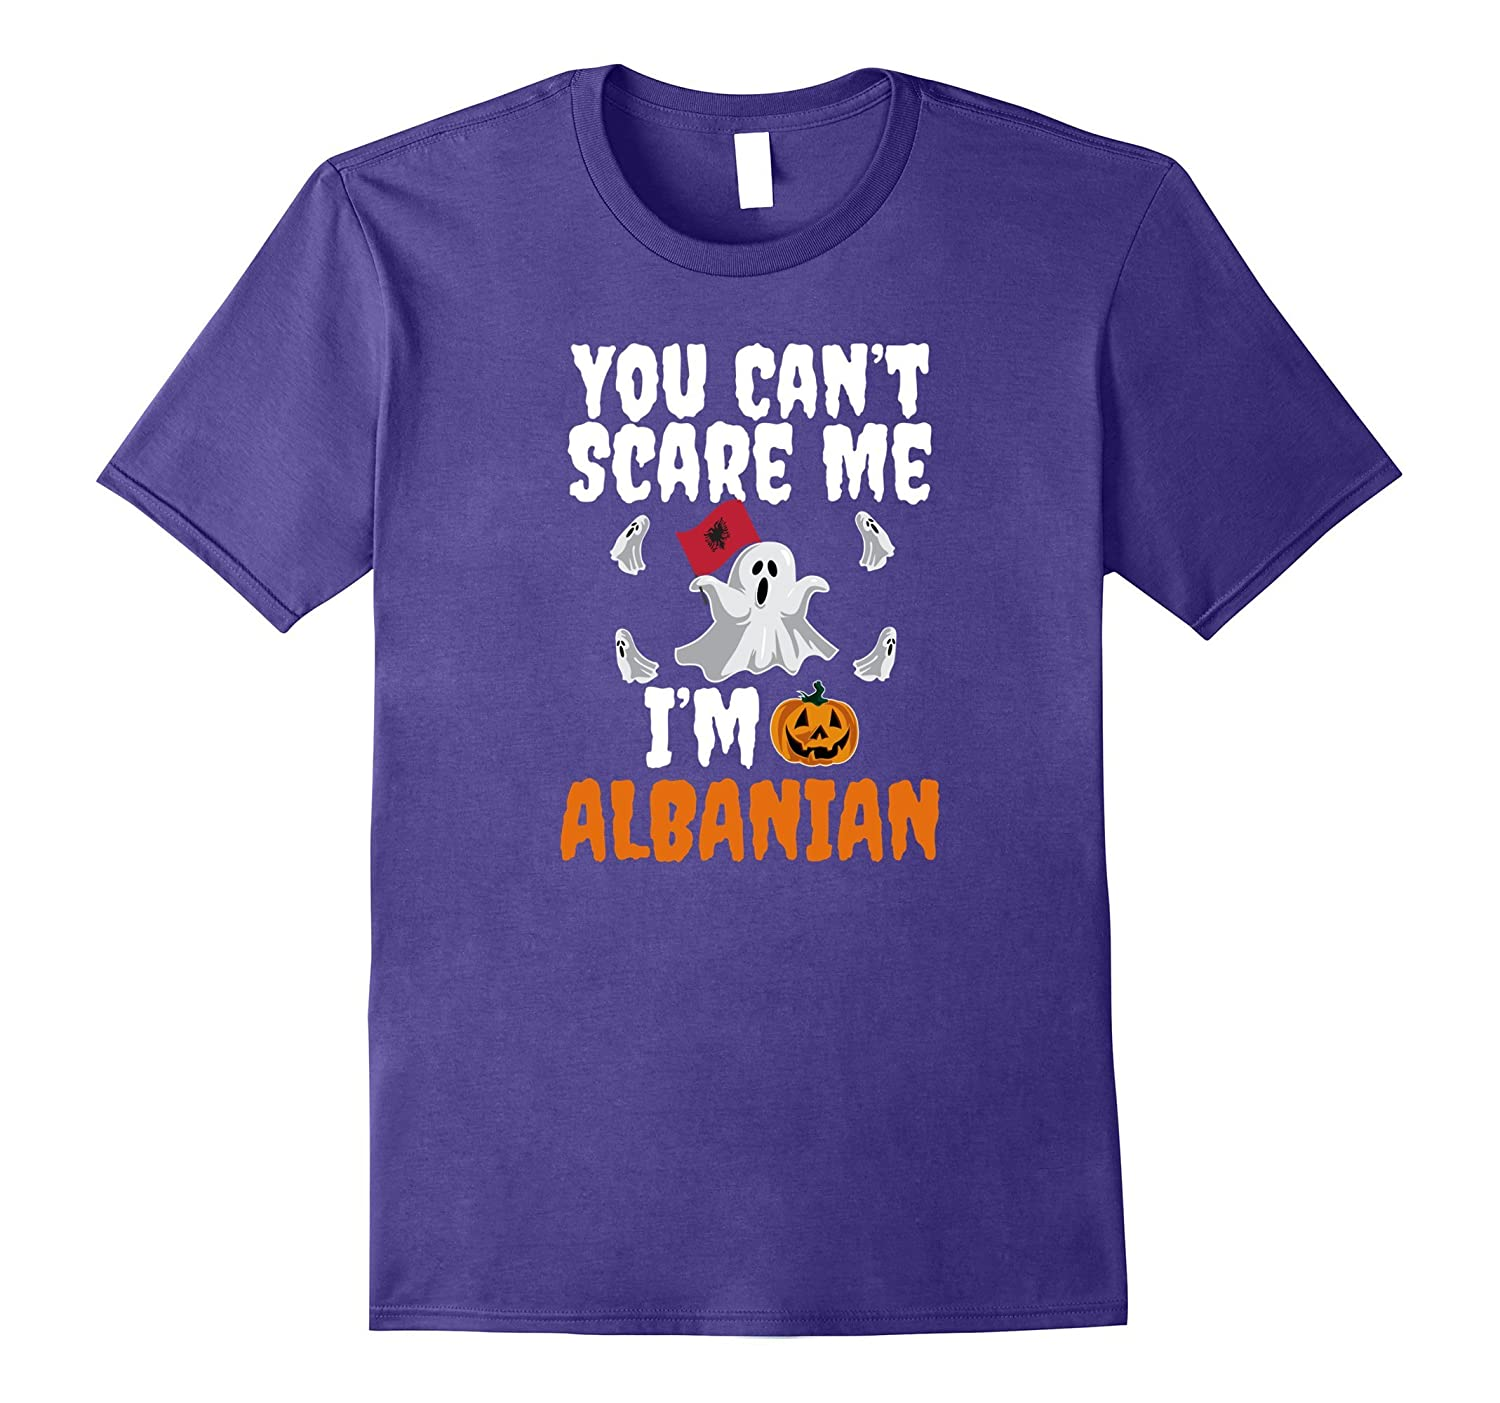 Can't Scare Me I'm Albanian Funny Scary T-shirt Halloween-FL